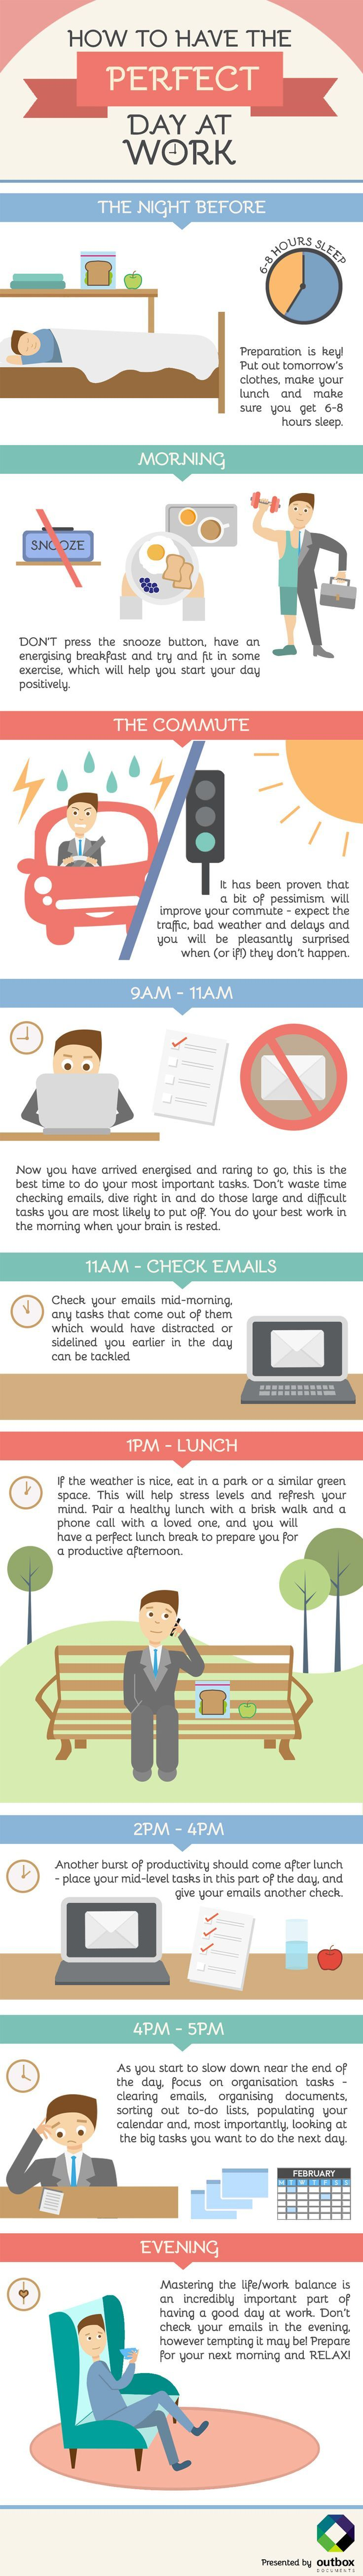 How to Have the Perfect Day at Work – Infographic with Tips - Tap the link now to Learn how I made it to 1 million in sales in 5 months with e-commerce! I'll give you the 3 advertising phases I did to make it for FRE